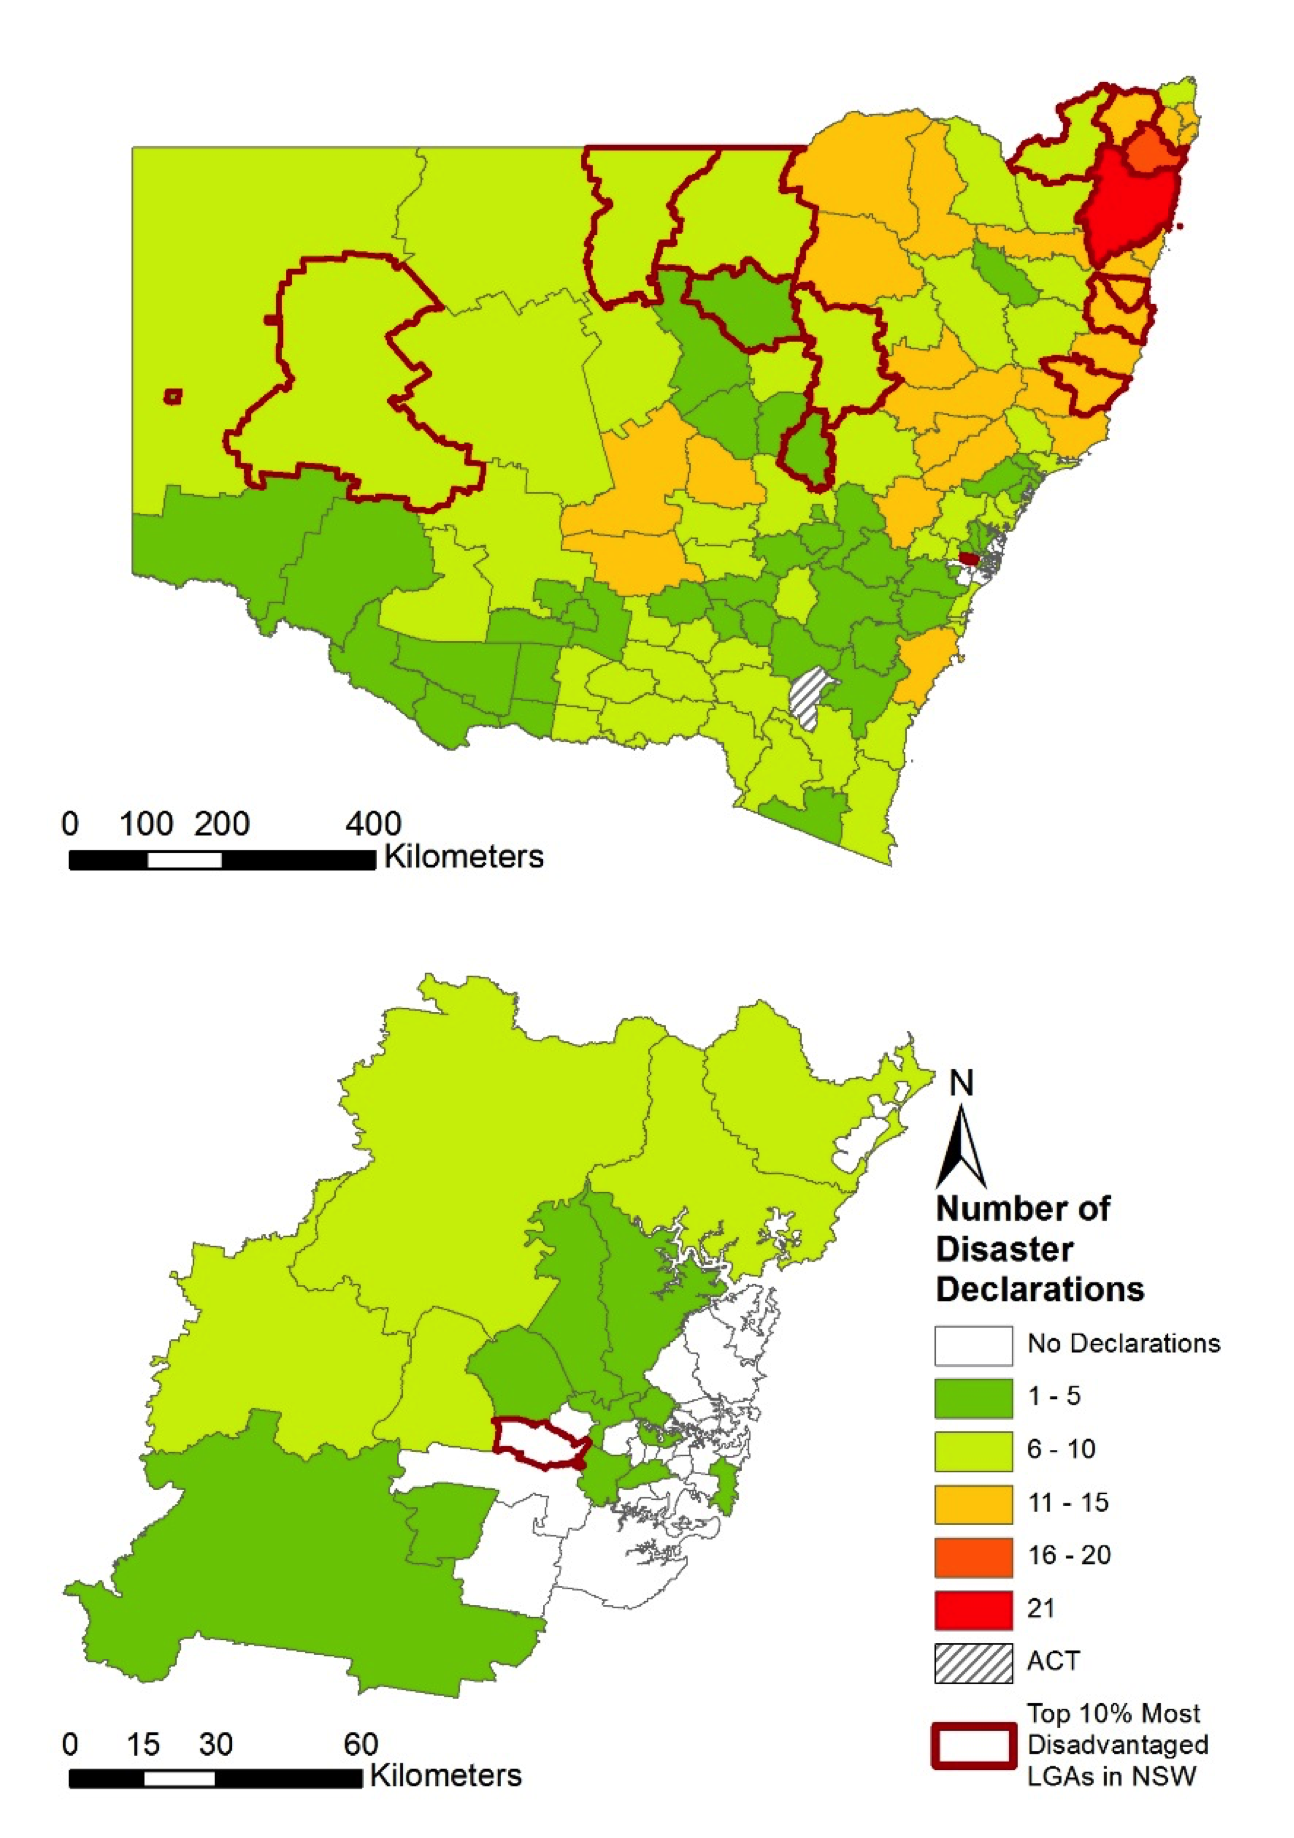 Natural disasters are affecting some of Australias most